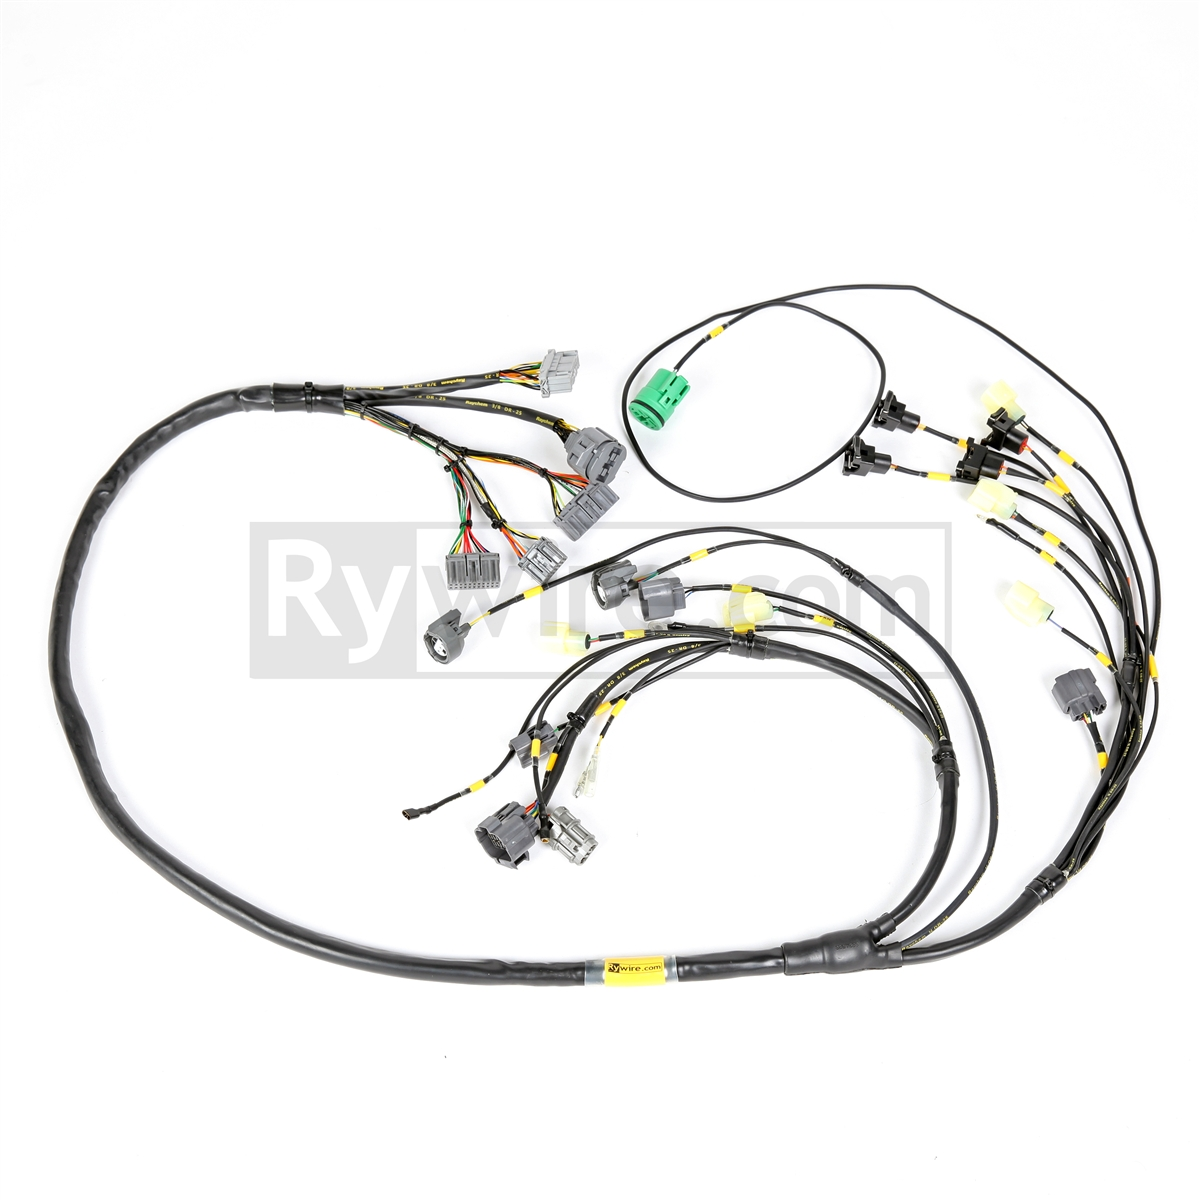 H1 Milspec 2?1402582650 rywire com mil spec f series (f20b) & h series (h22) harness 94 Civic Engine Red at reclaimingppi.co